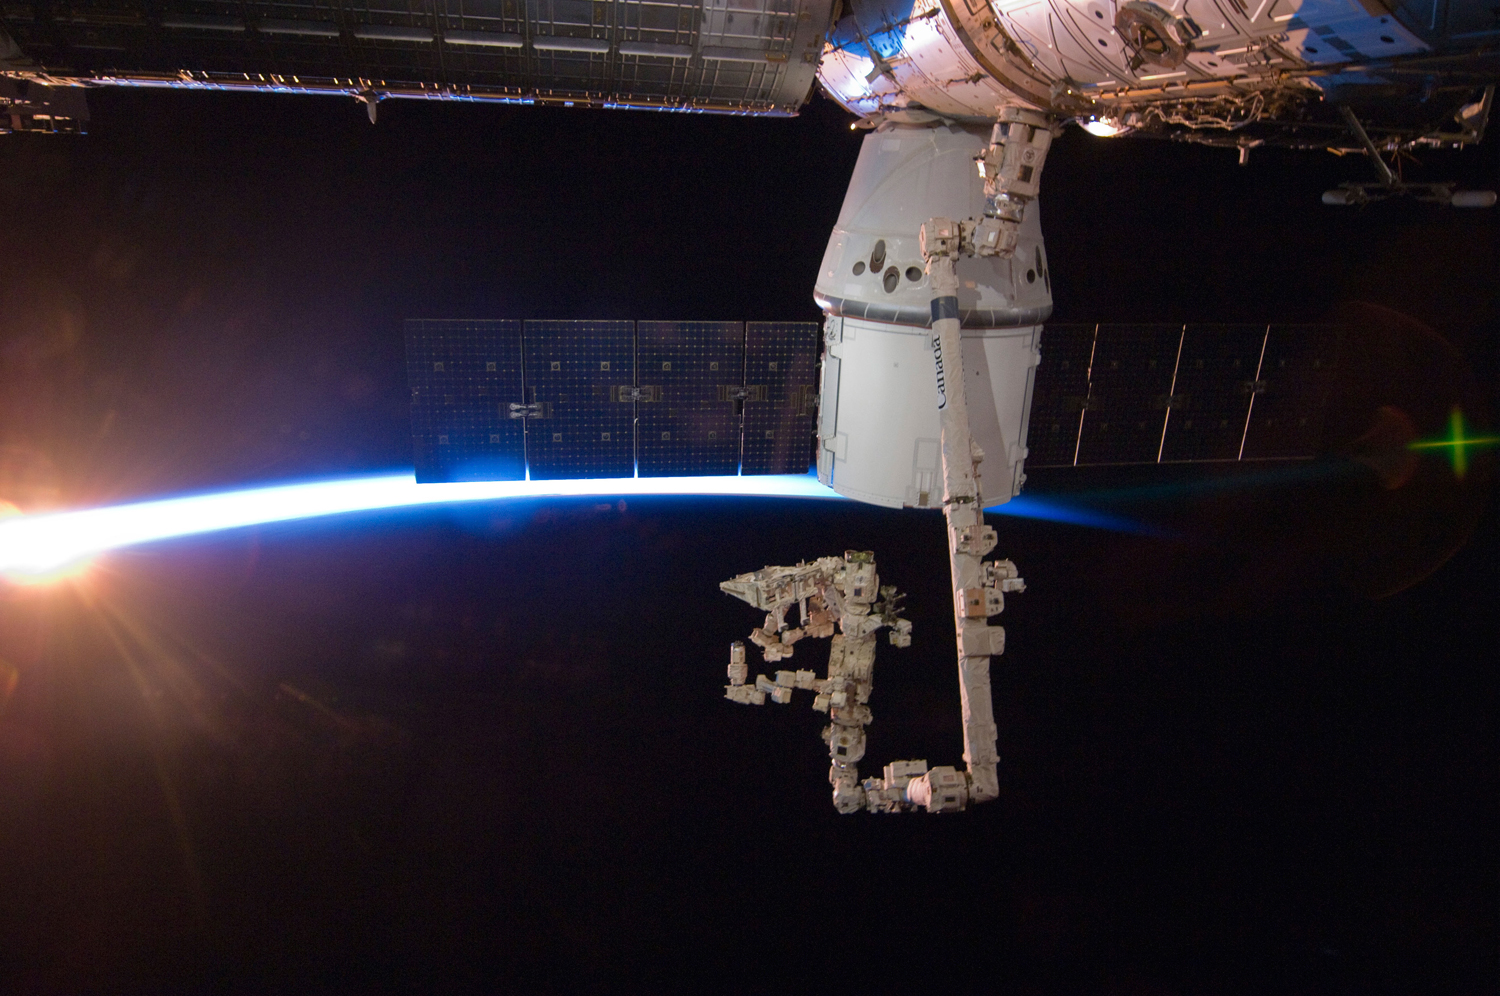 SpaceX's Dragon commercial cargo craft is berthed to the International Space Station on May 25, 2012.